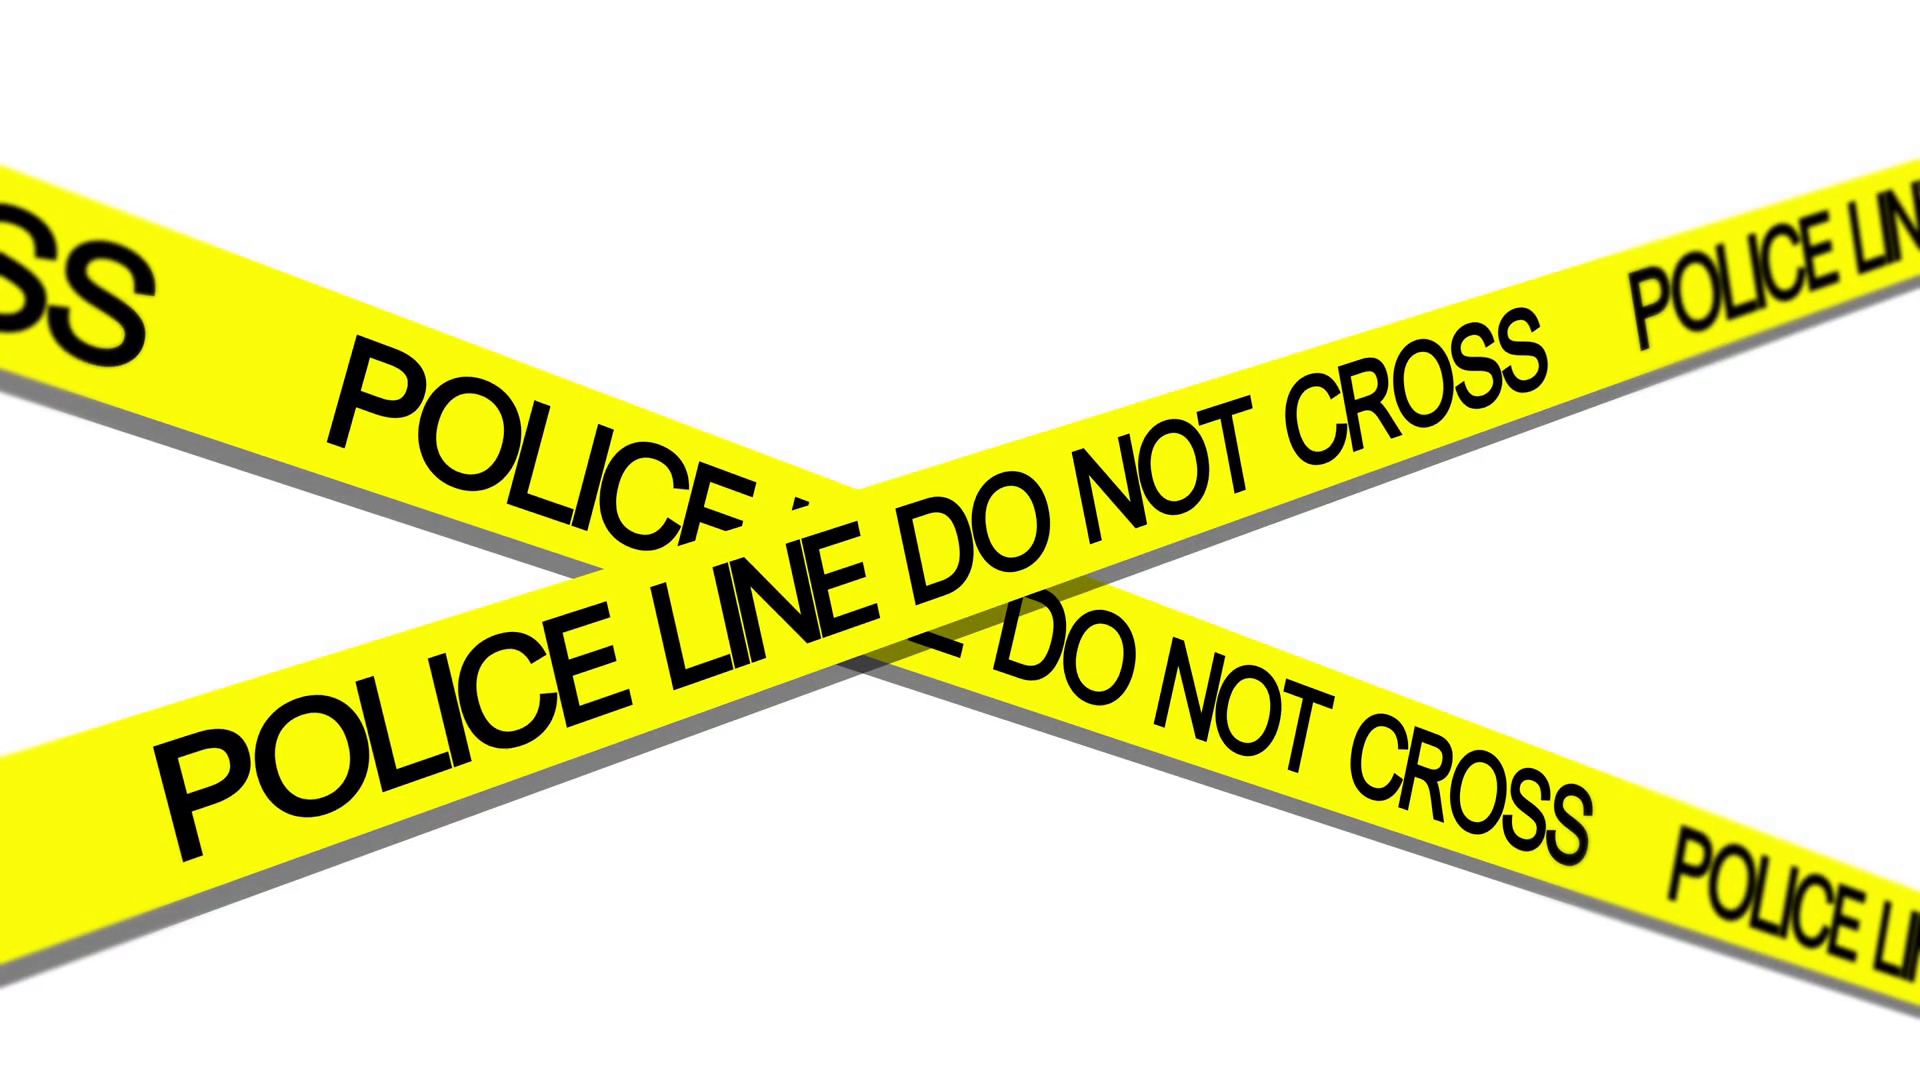 Police Line Do Not Cross Png - police line do not cross tape waving in breeze Motion Background ...